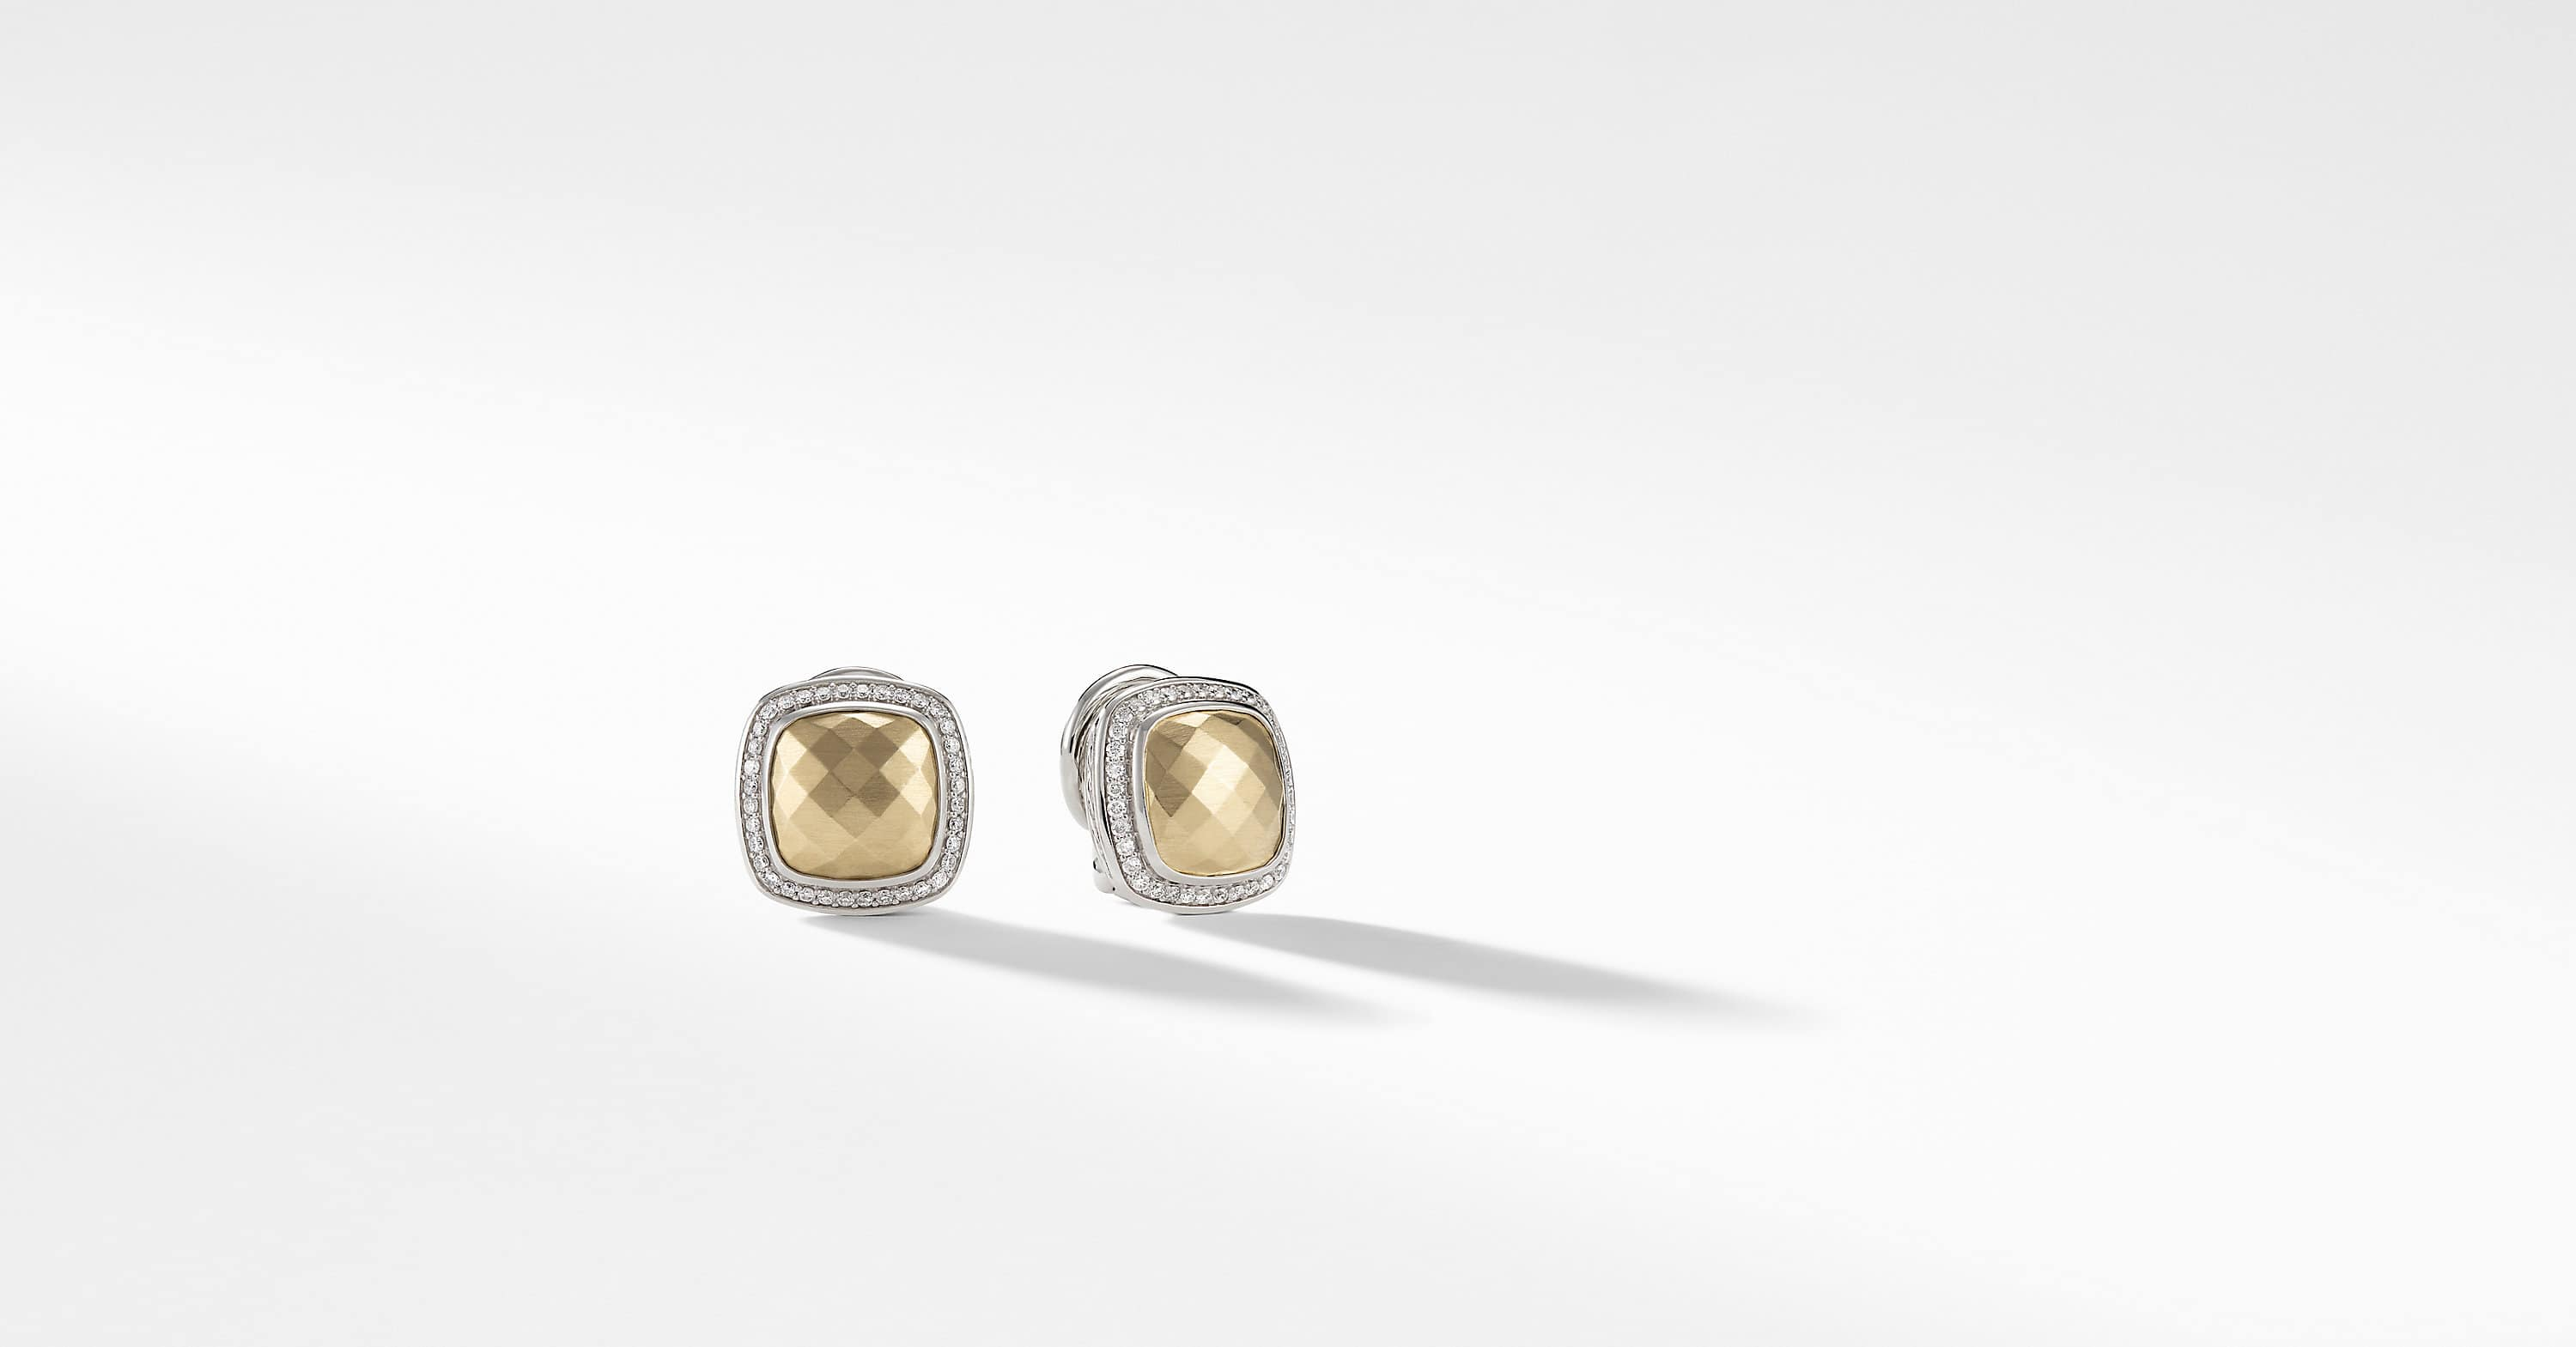 Albion Earrings with Diamonds and 18K Gold, 11mm